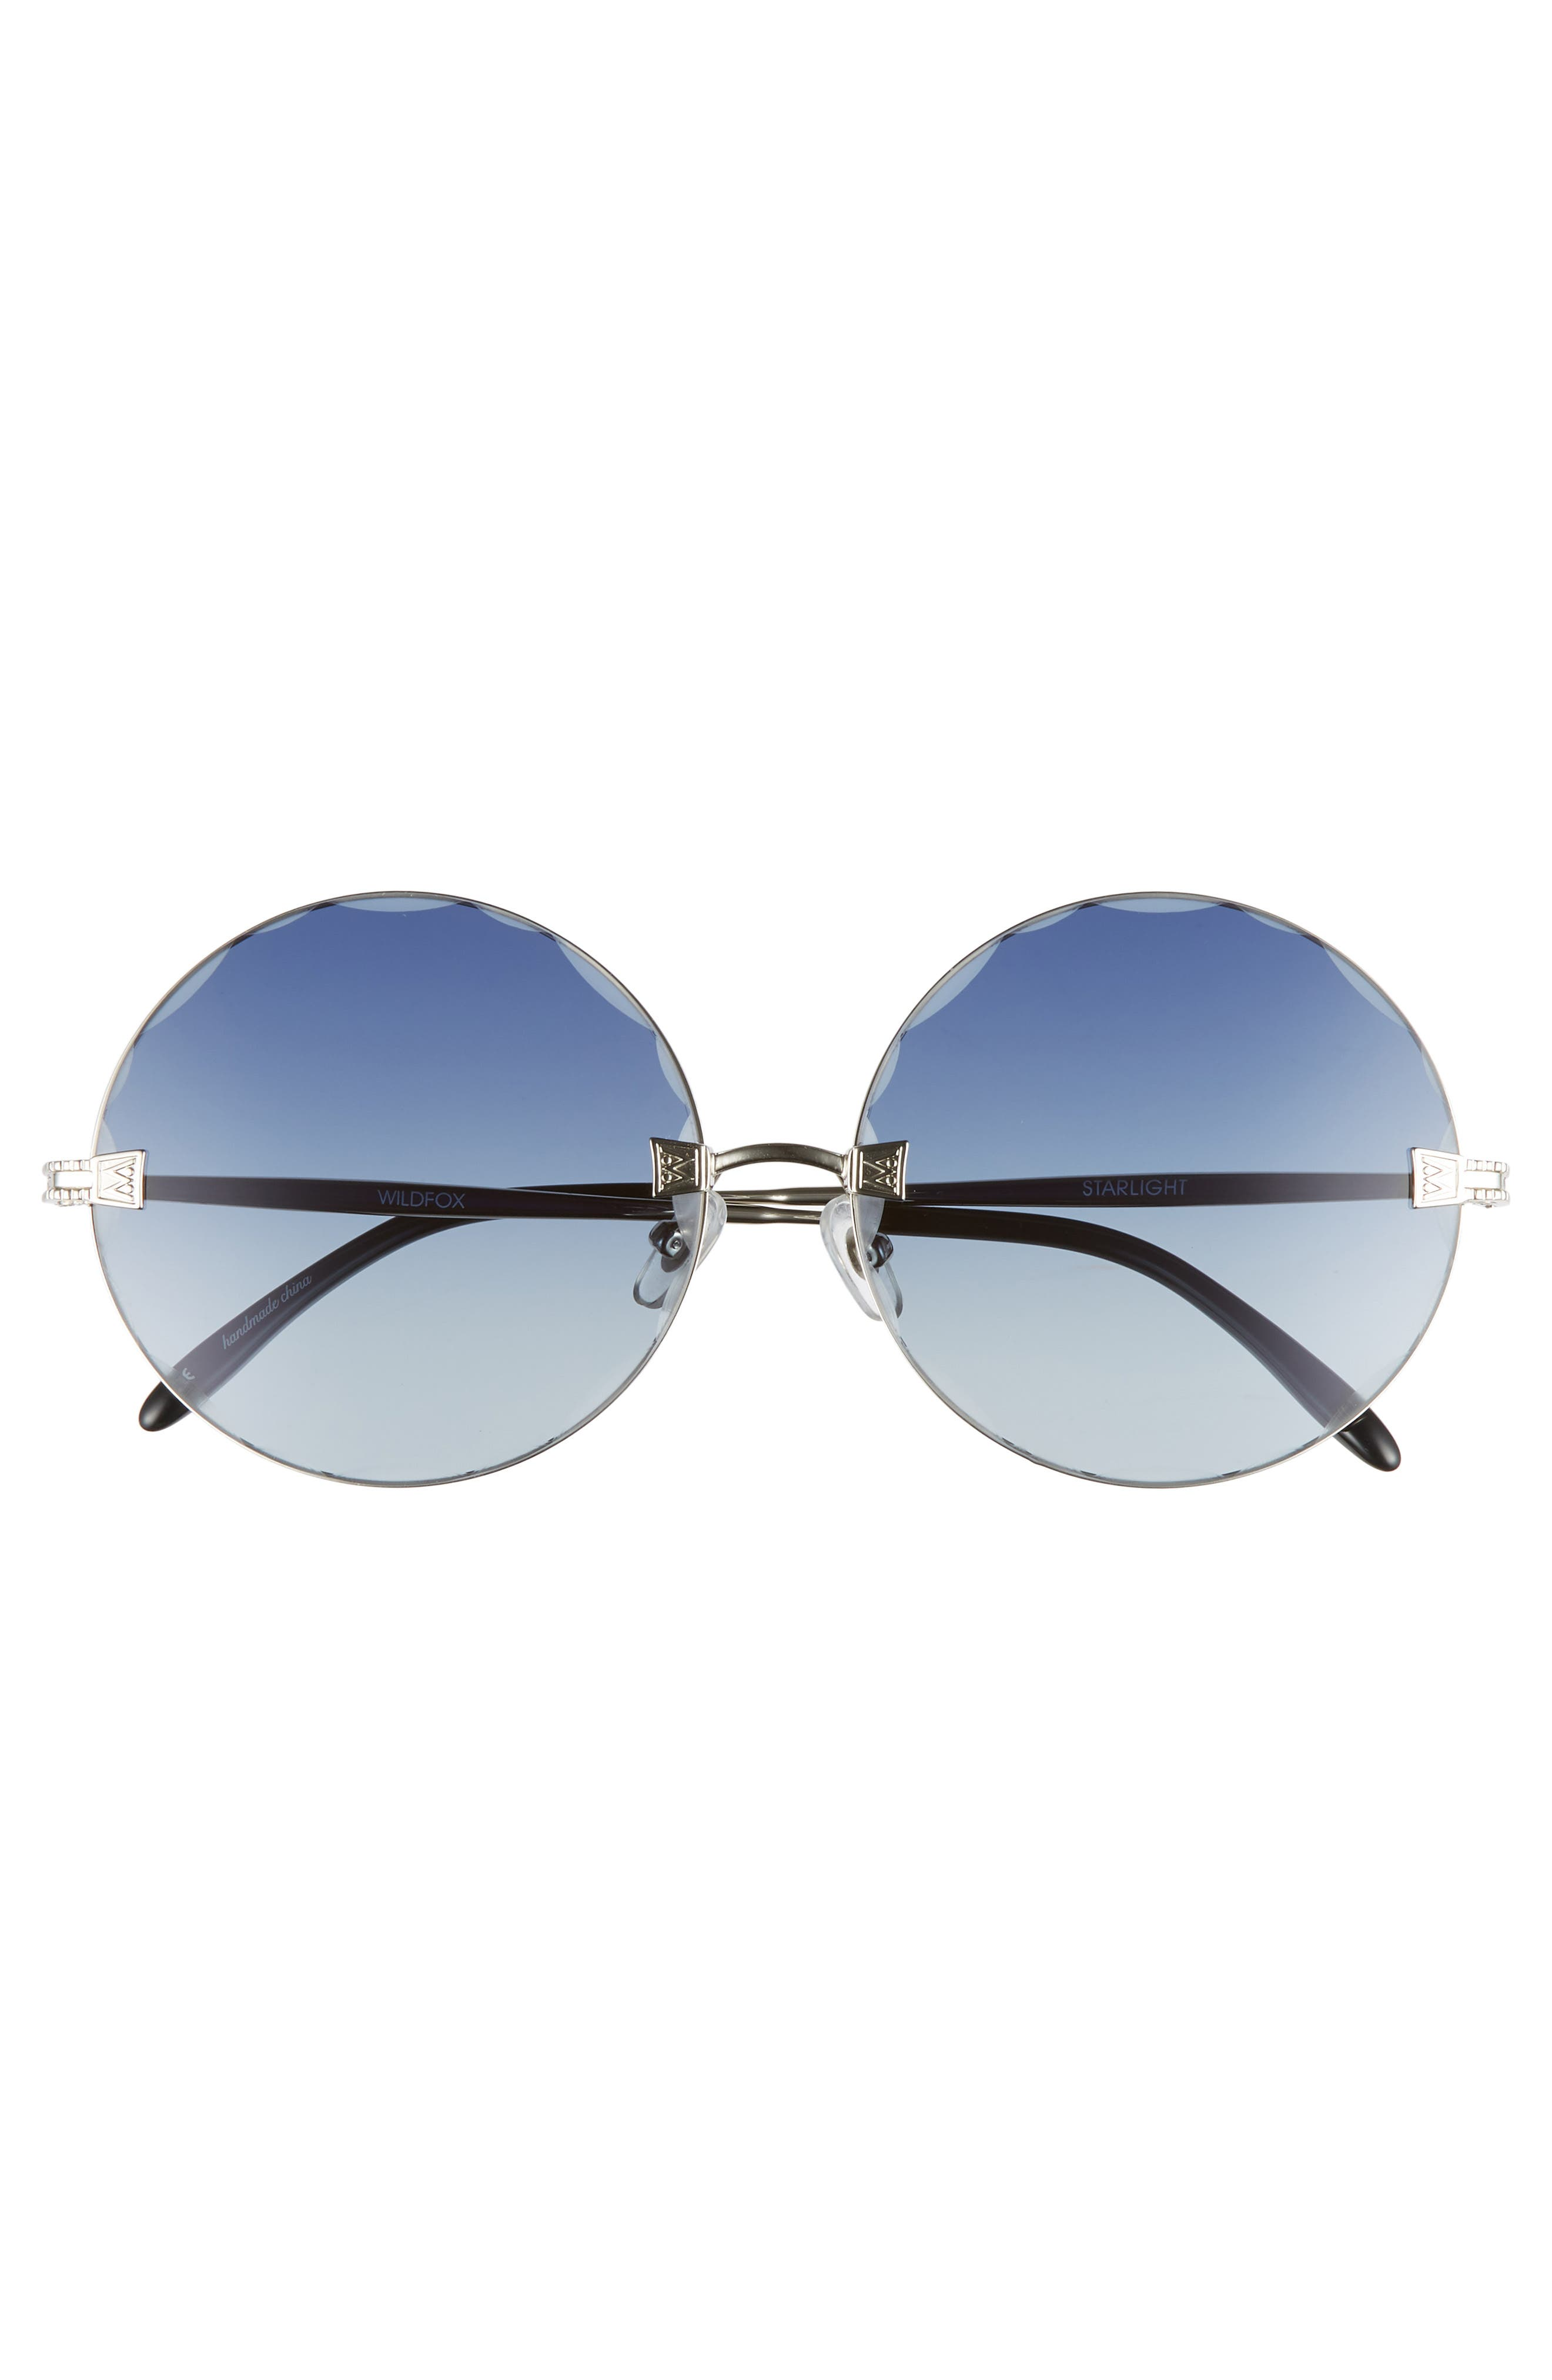 Starlight 62mm Oversize Round Sunglasses,                             Alternate thumbnail 3, color,                             040